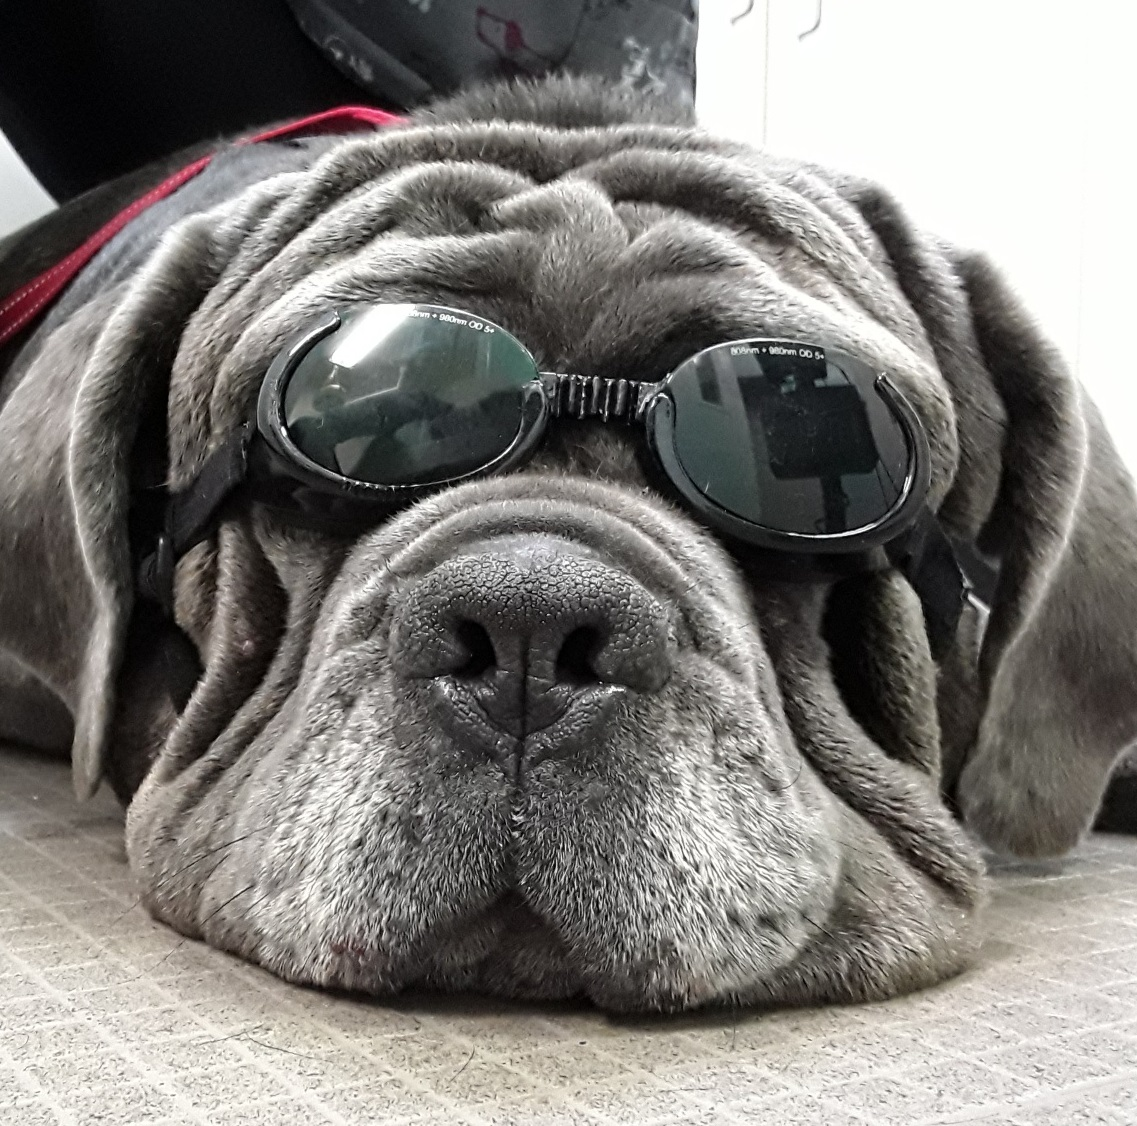 Wrinkles and Doggles